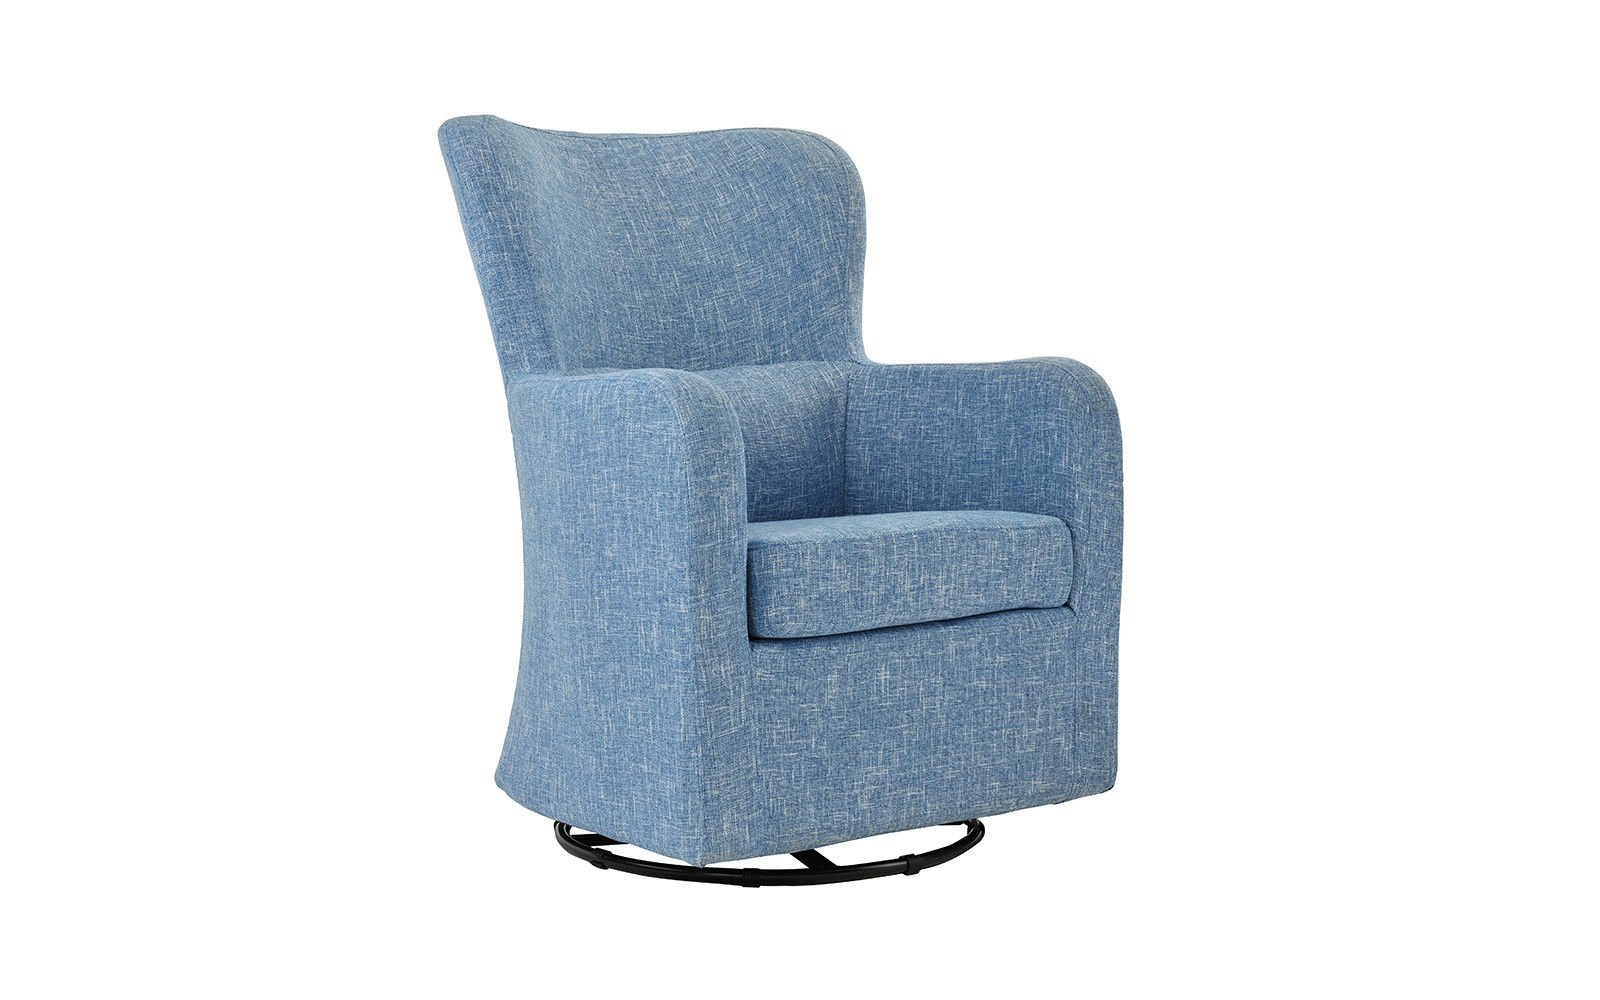 Details About Living Room Home Decor Armchair Rotating Swivel Accent Chair Linen Light Blue